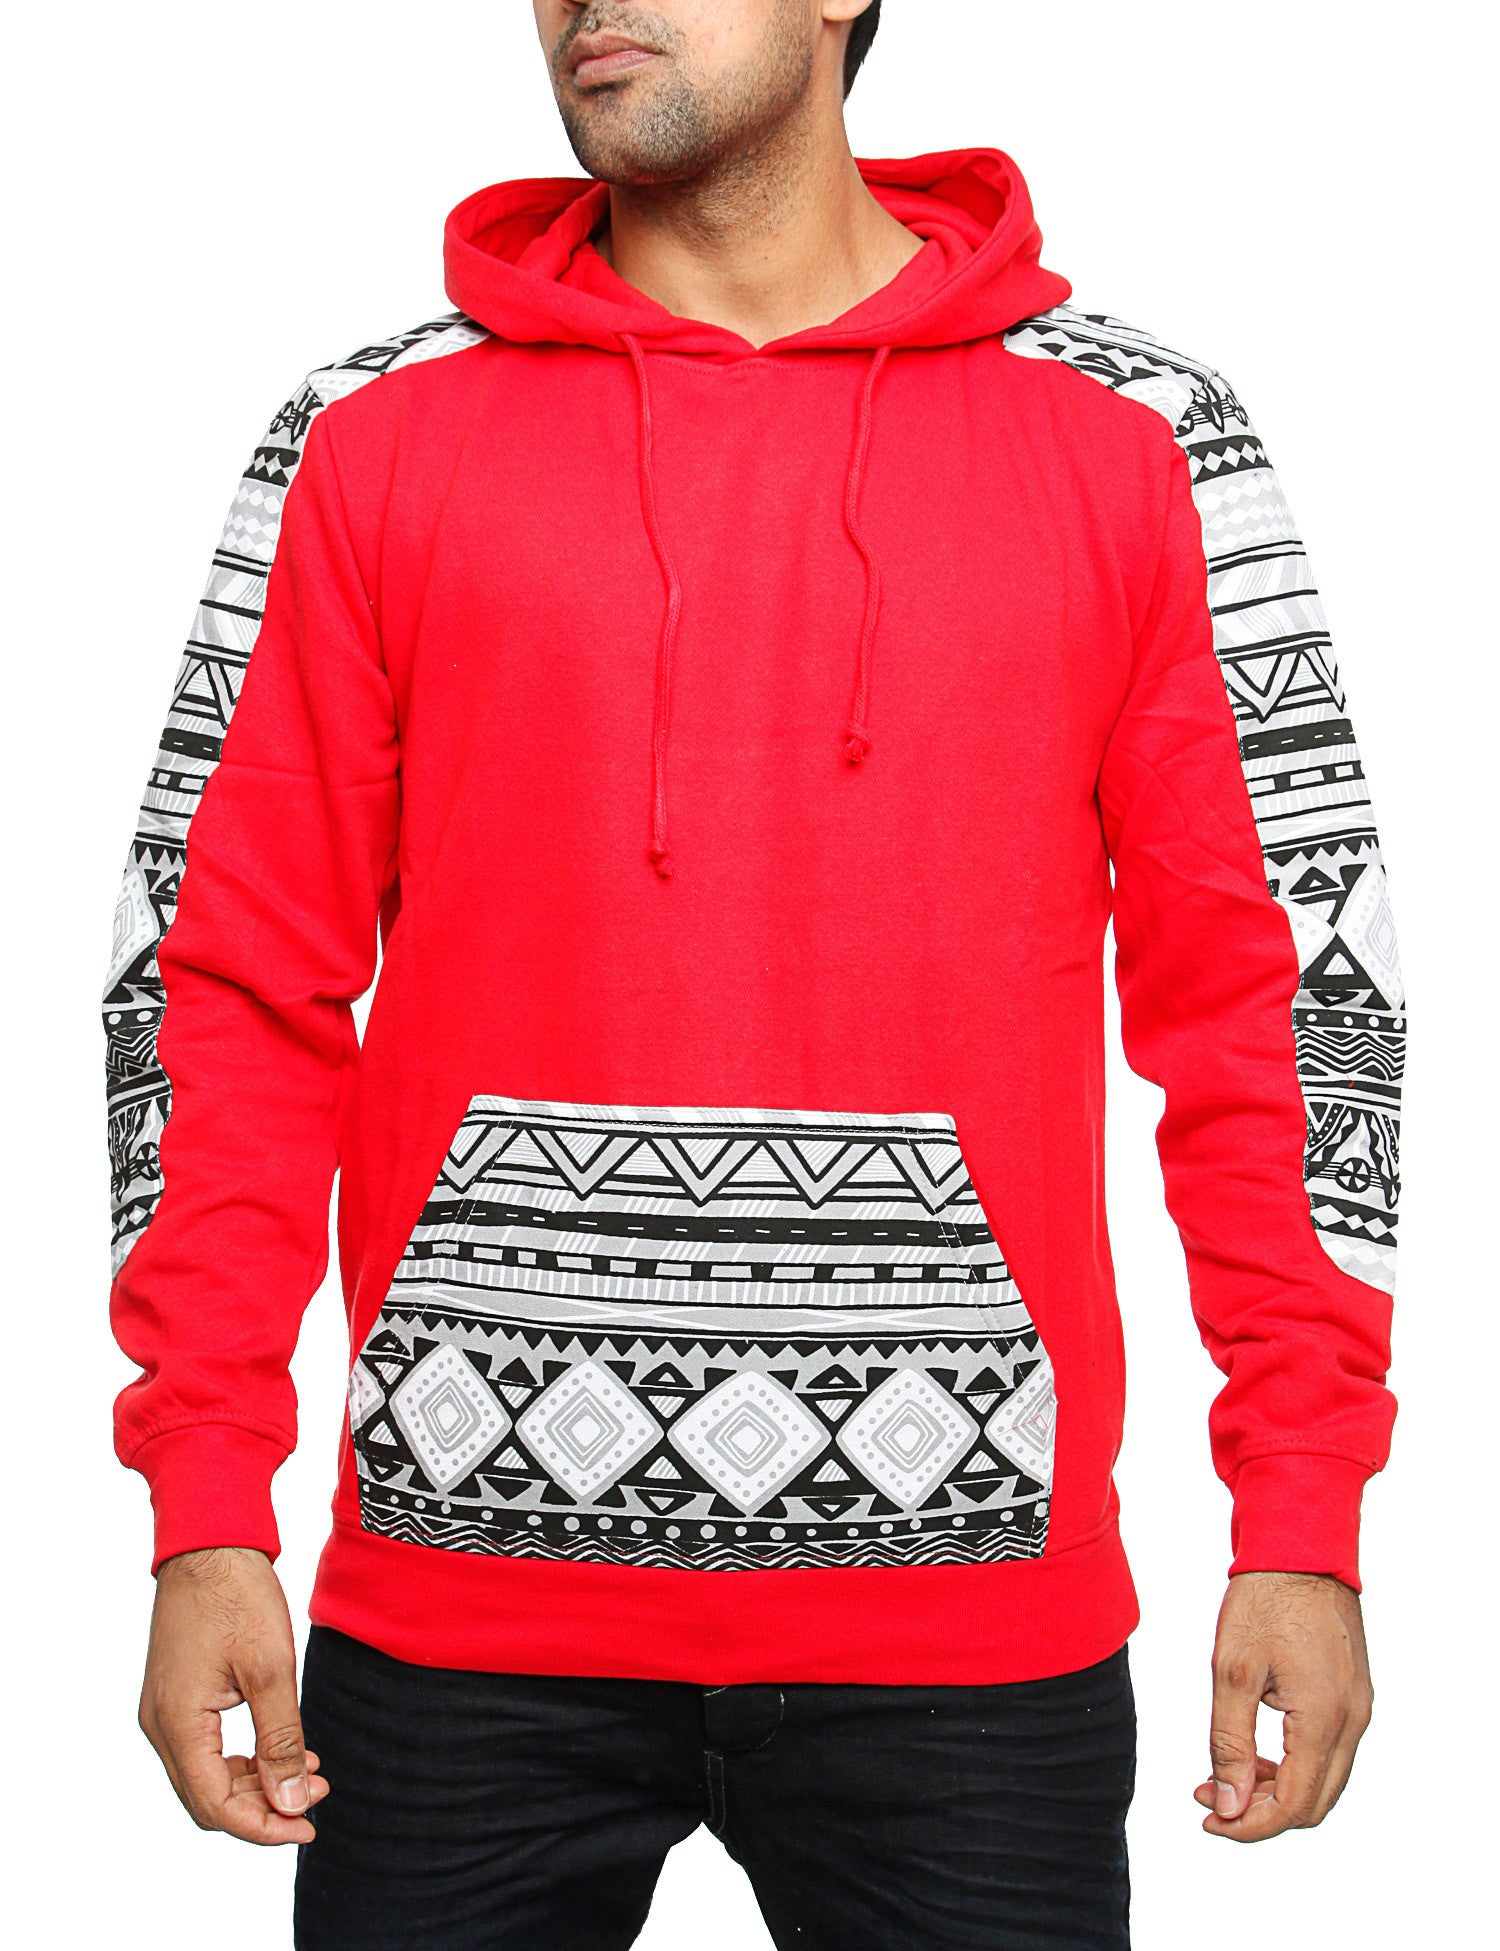 Imperious ?Aztec? Hoody HS29 Red